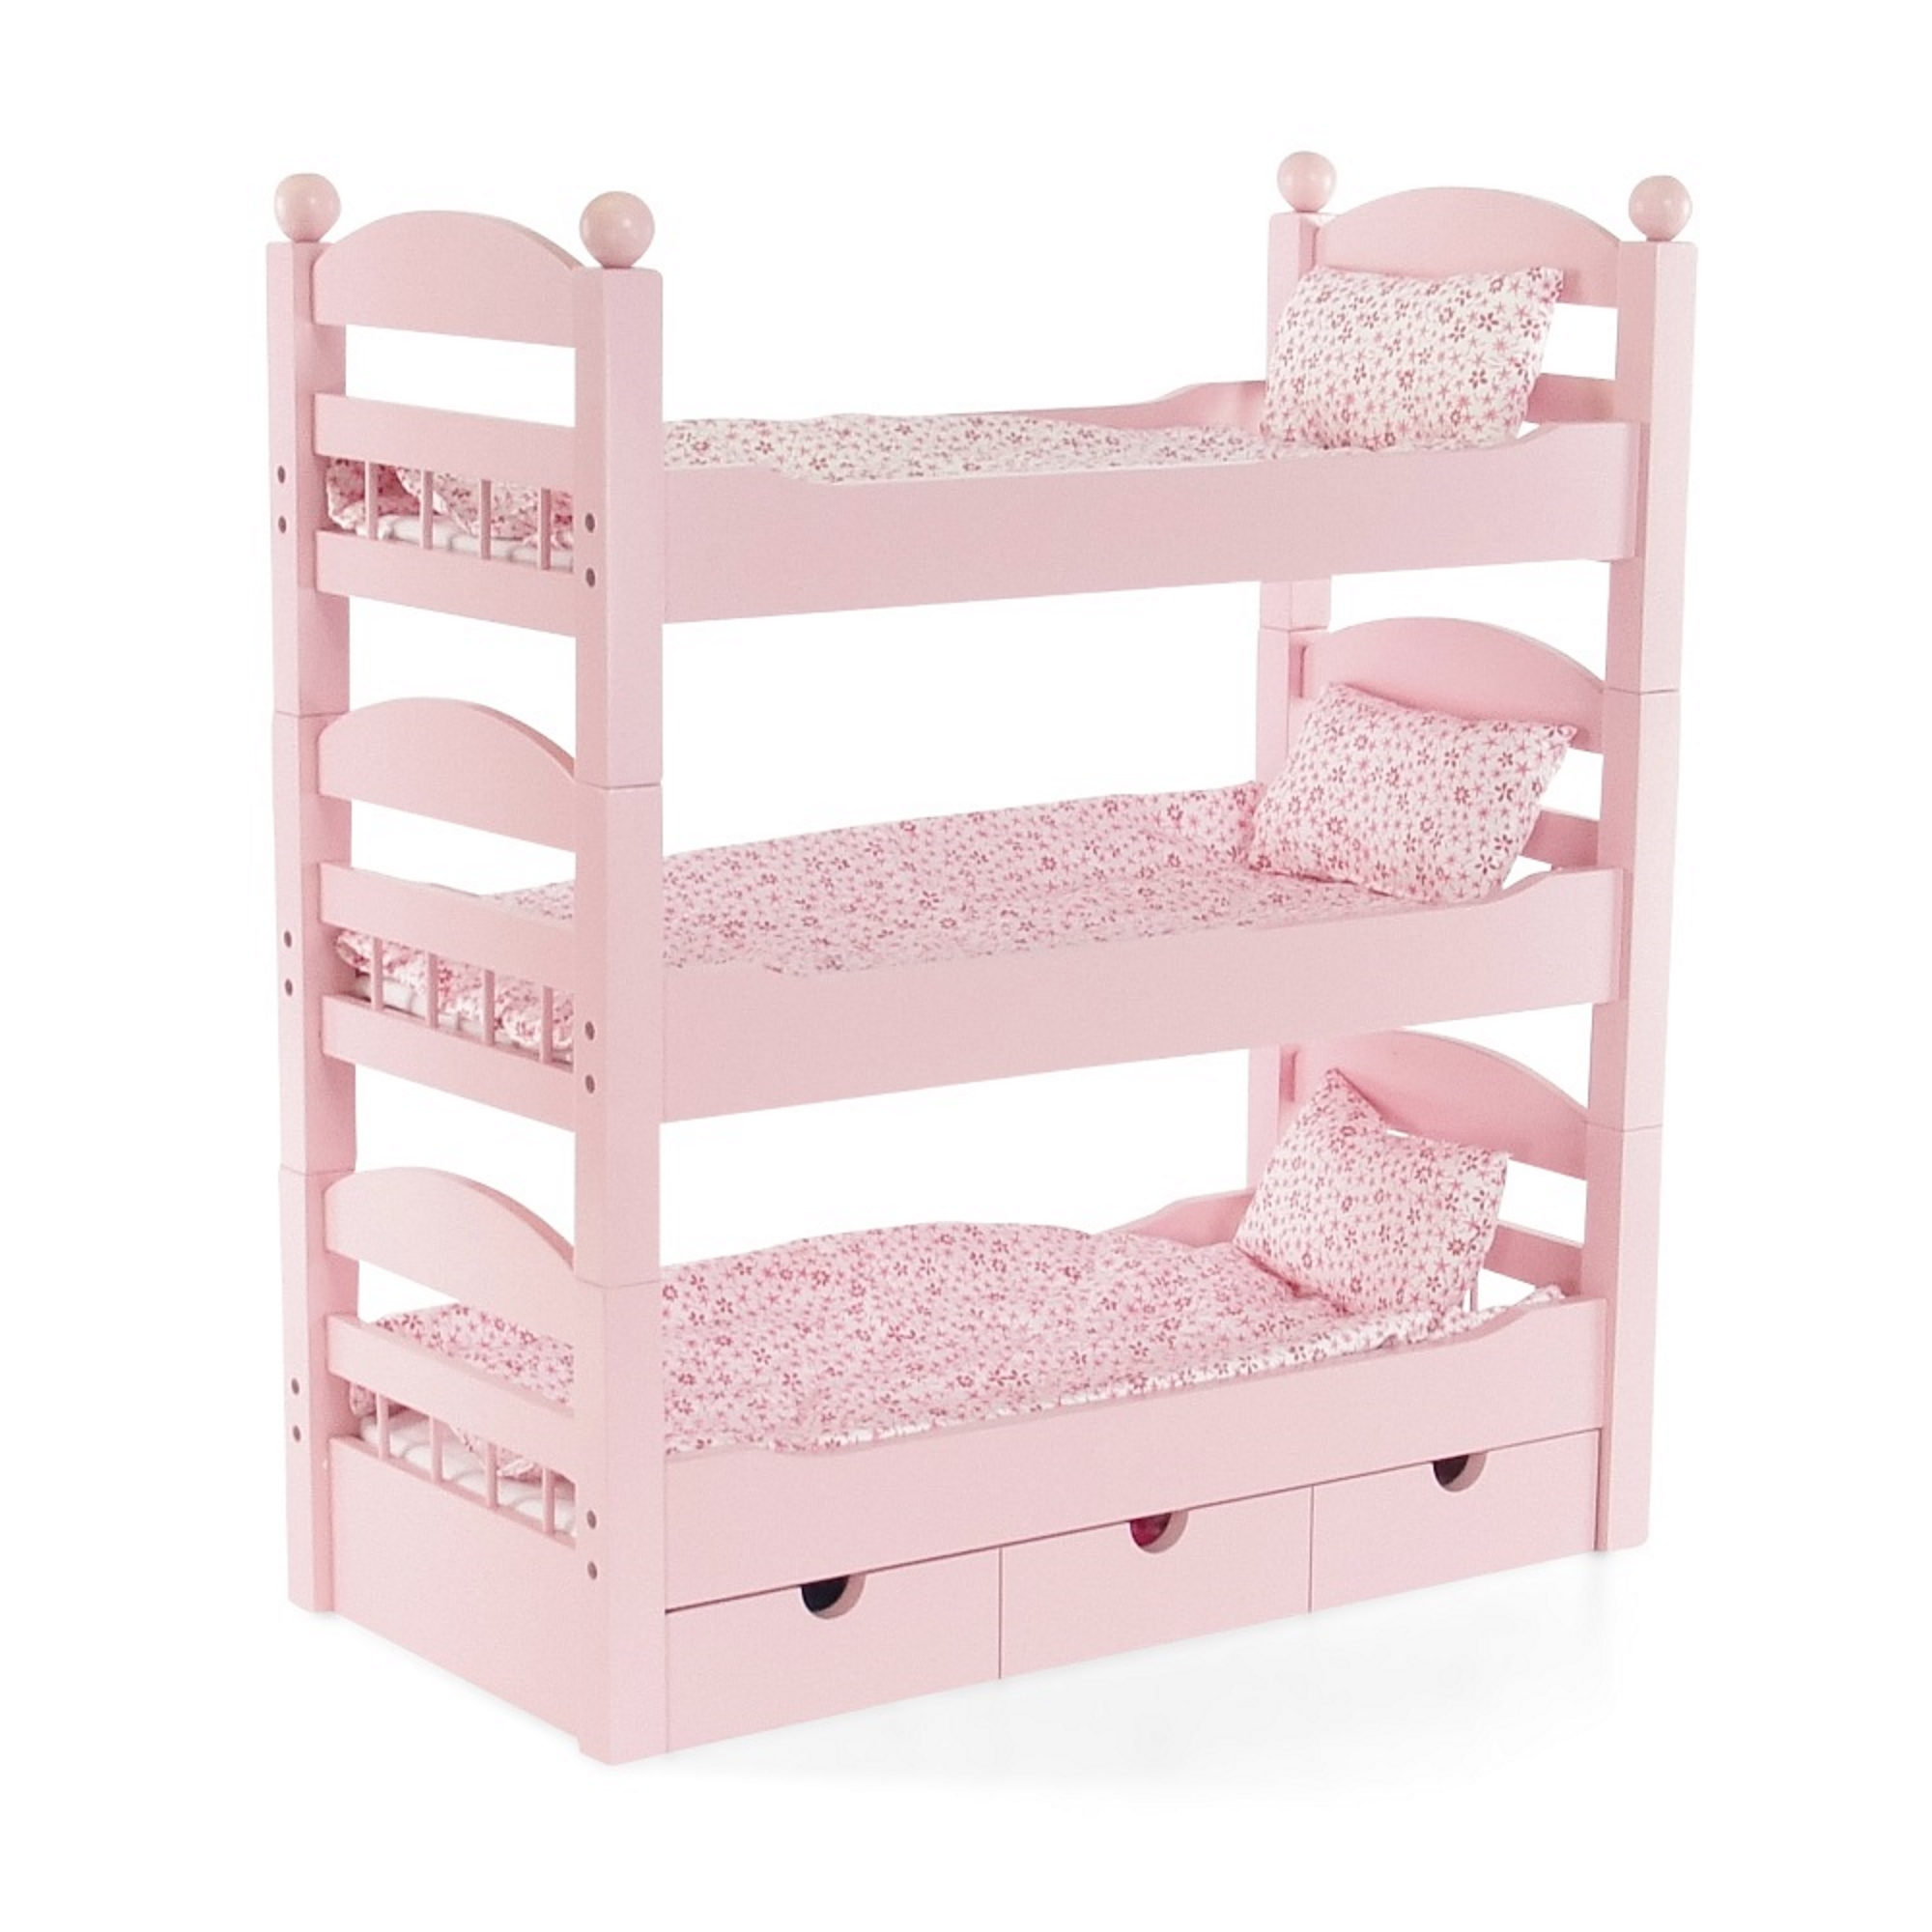 18 Inch Doll Triple Bunk Bed Stackable Wooden Furniture Made to Fit American Girl or Other... by Emily Rose Doll Clothes